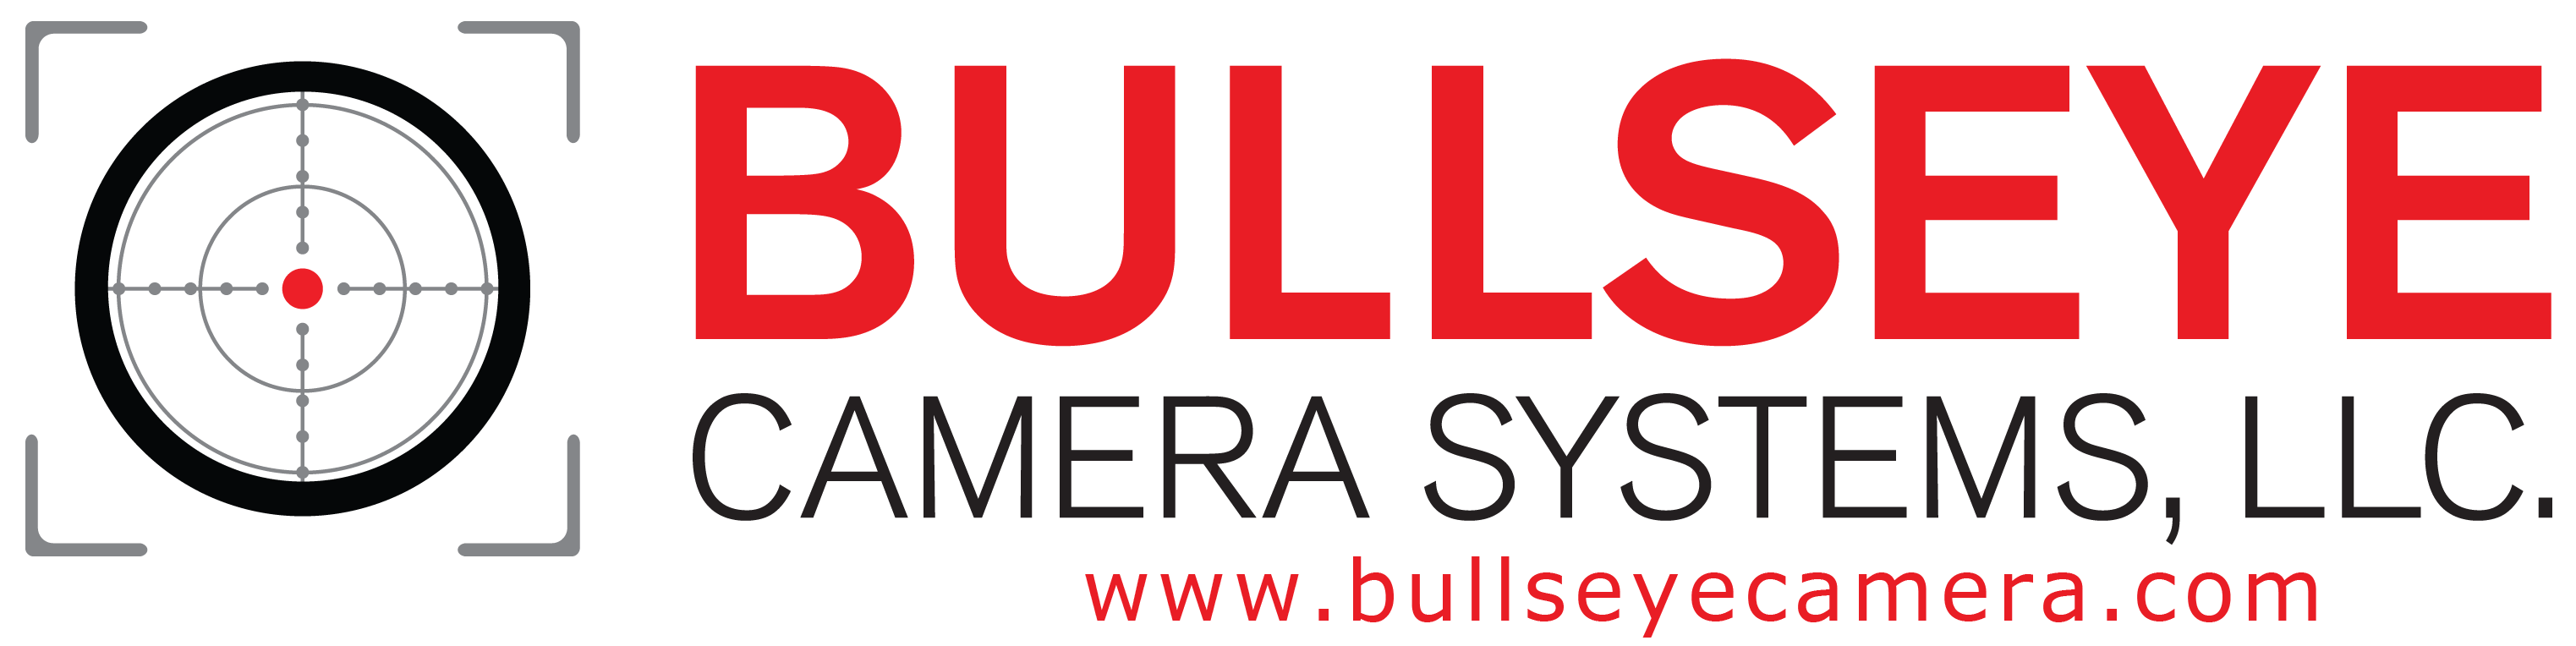 Bullseye-Camera-Systems-Logo-Final_URL_White